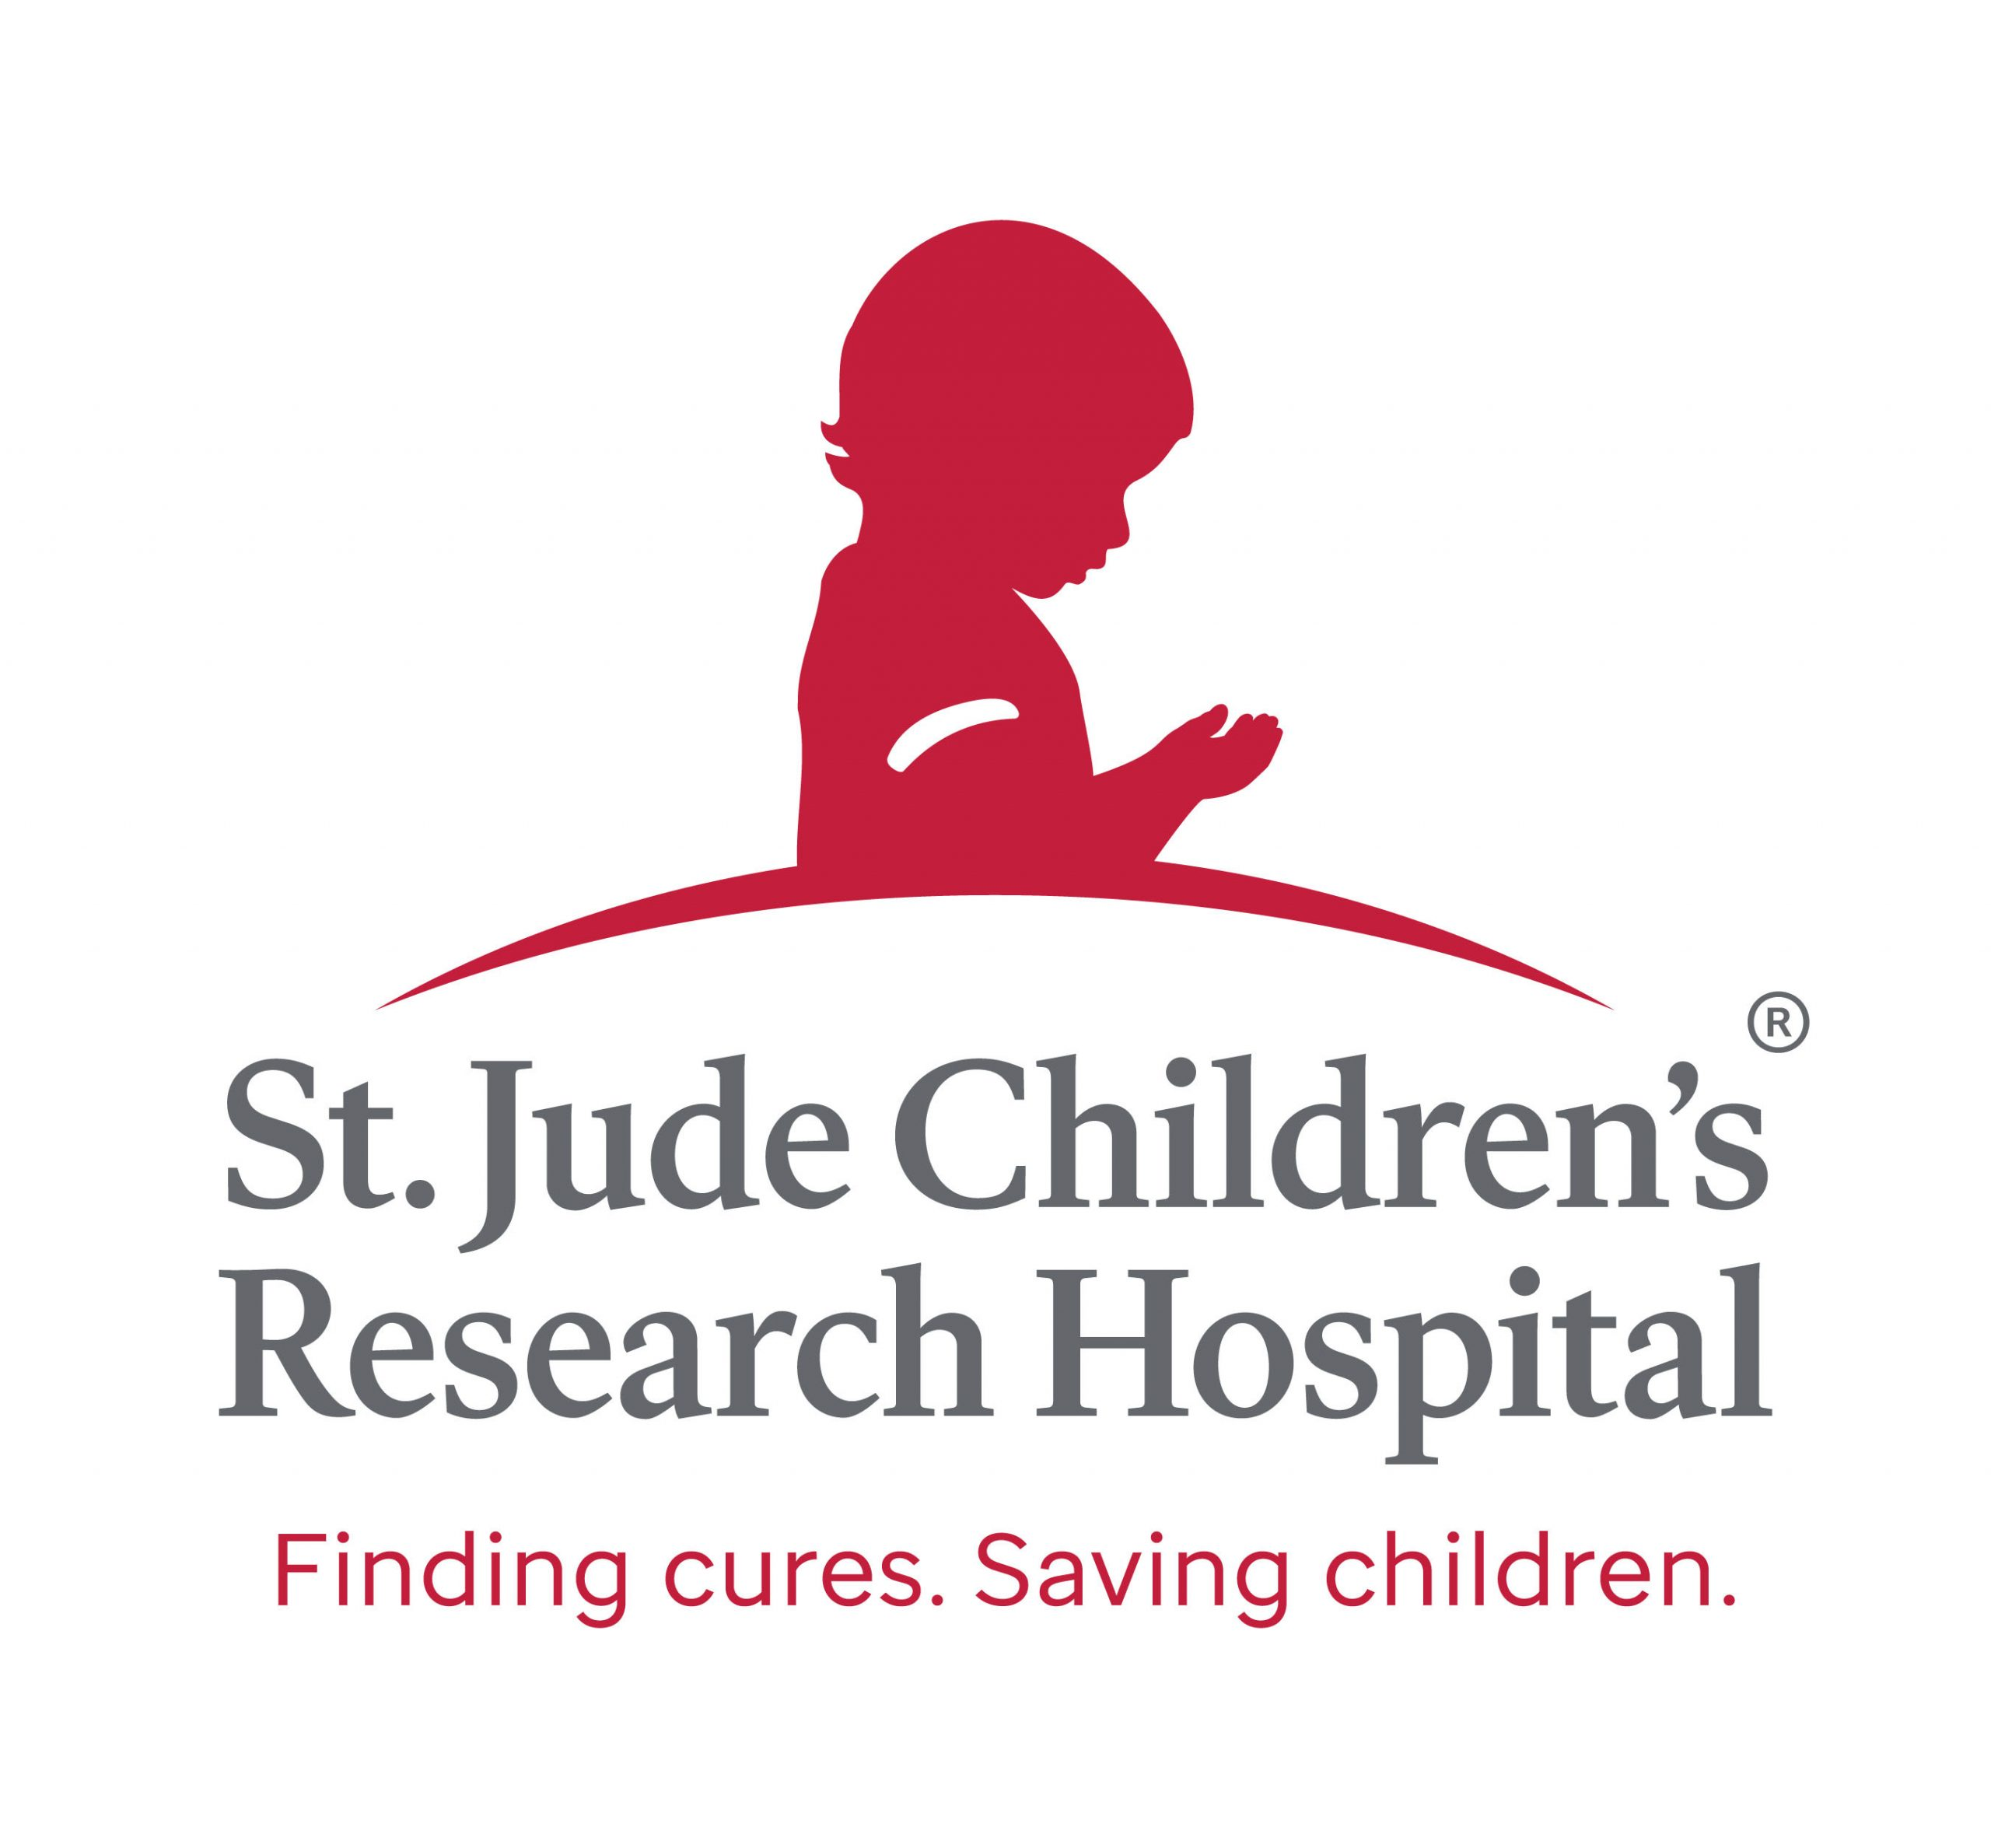 St. Jude is leading the way the world understands, treats and defeats childhood cancer and other life-threatening diseases.